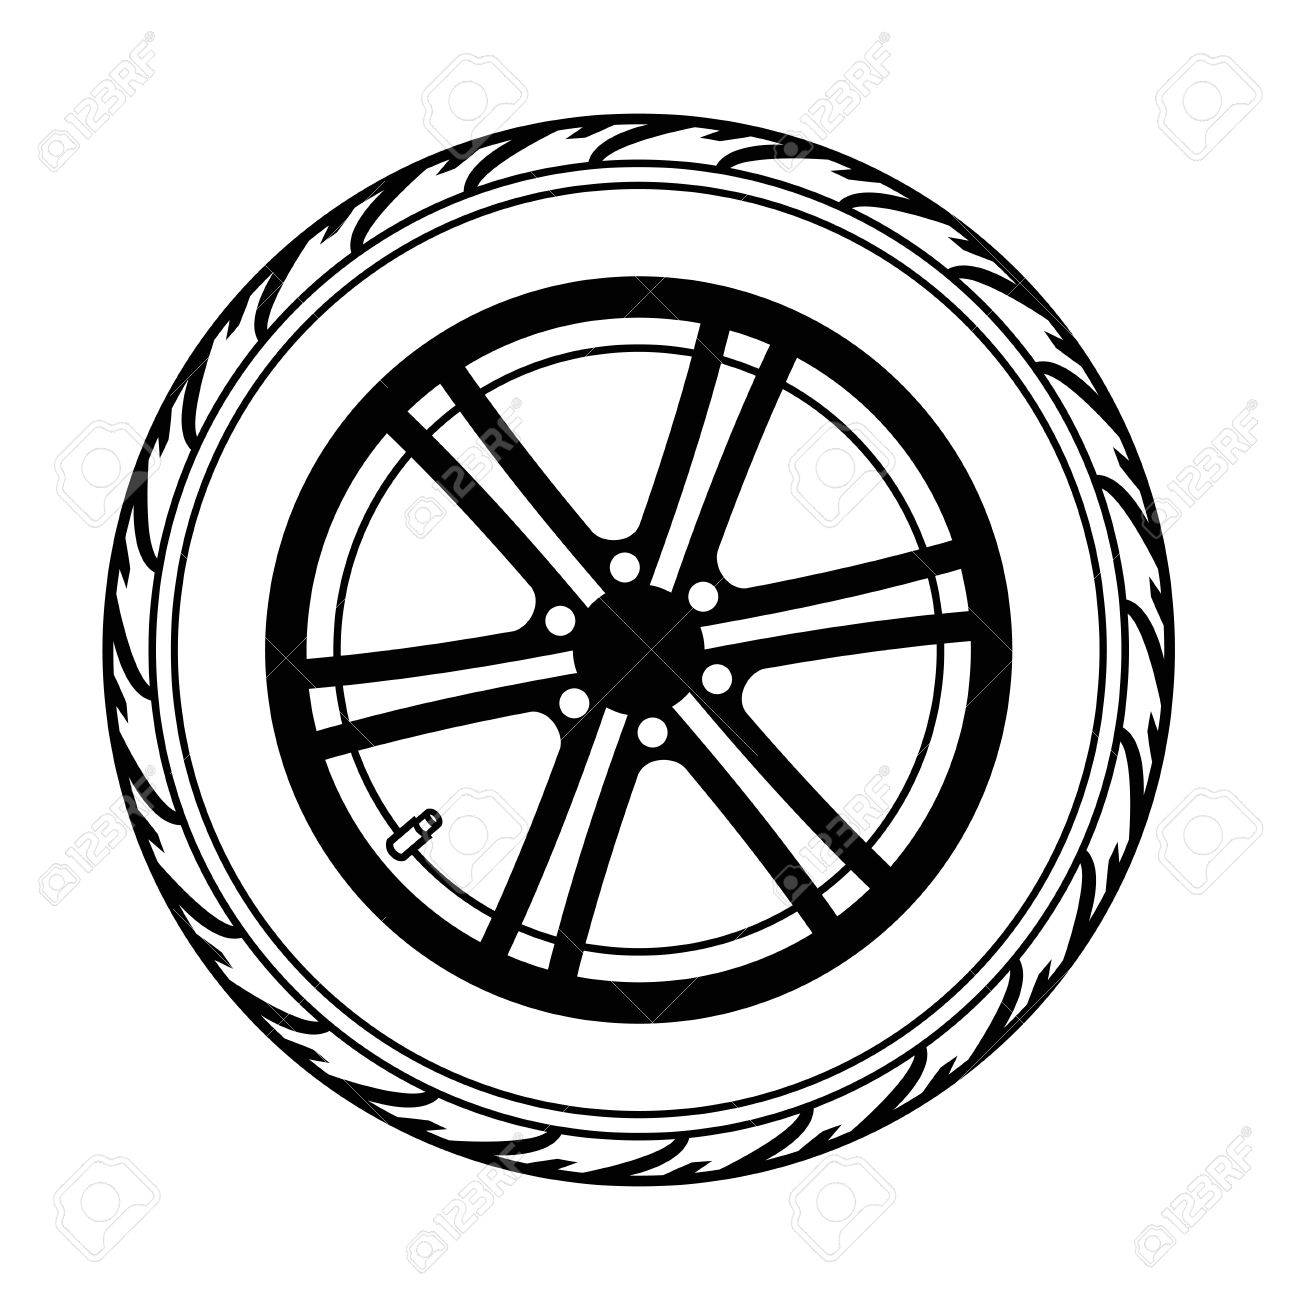 Vector Black Car Wheel On White Background Stock Photo Picture And Royalty Free Image Image 29539782